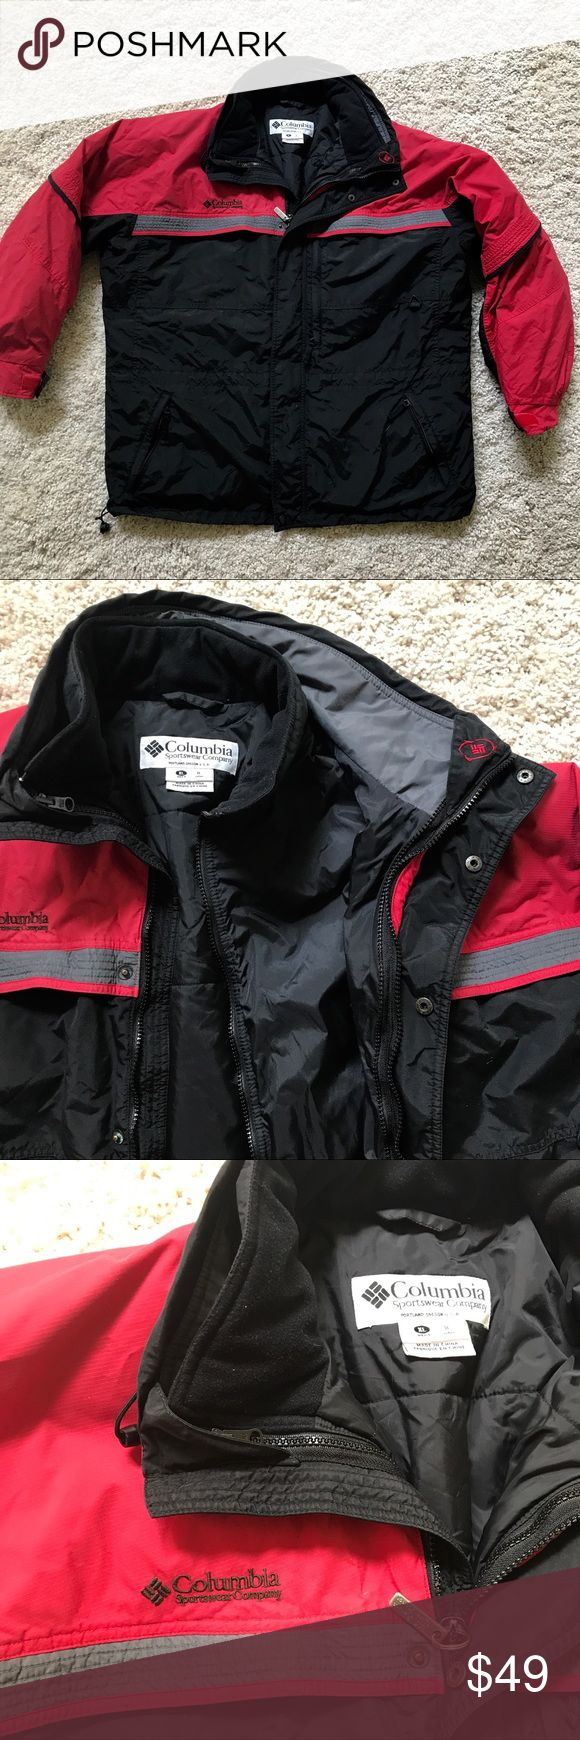 Columbia Gizzmo Ski Snow Winter Coat men XL Columbia Gizzmo 2 pc. Coat within a coat for men size XL.  Waterproof exterior w/ multiple pockets that have zippered closure.  Embroidered logo on chest.  Snow guard inside cinch tie.  Adjustable arm bands to keep elements out.  Elastic adjustable waist tie.  Interior Coat is padded, quilted and lined.  Super warm.  Either coat can be worn without the other. It together for extreme cold.  Used for ski Snowboard Coat.  Men's size XL.. over sized to…